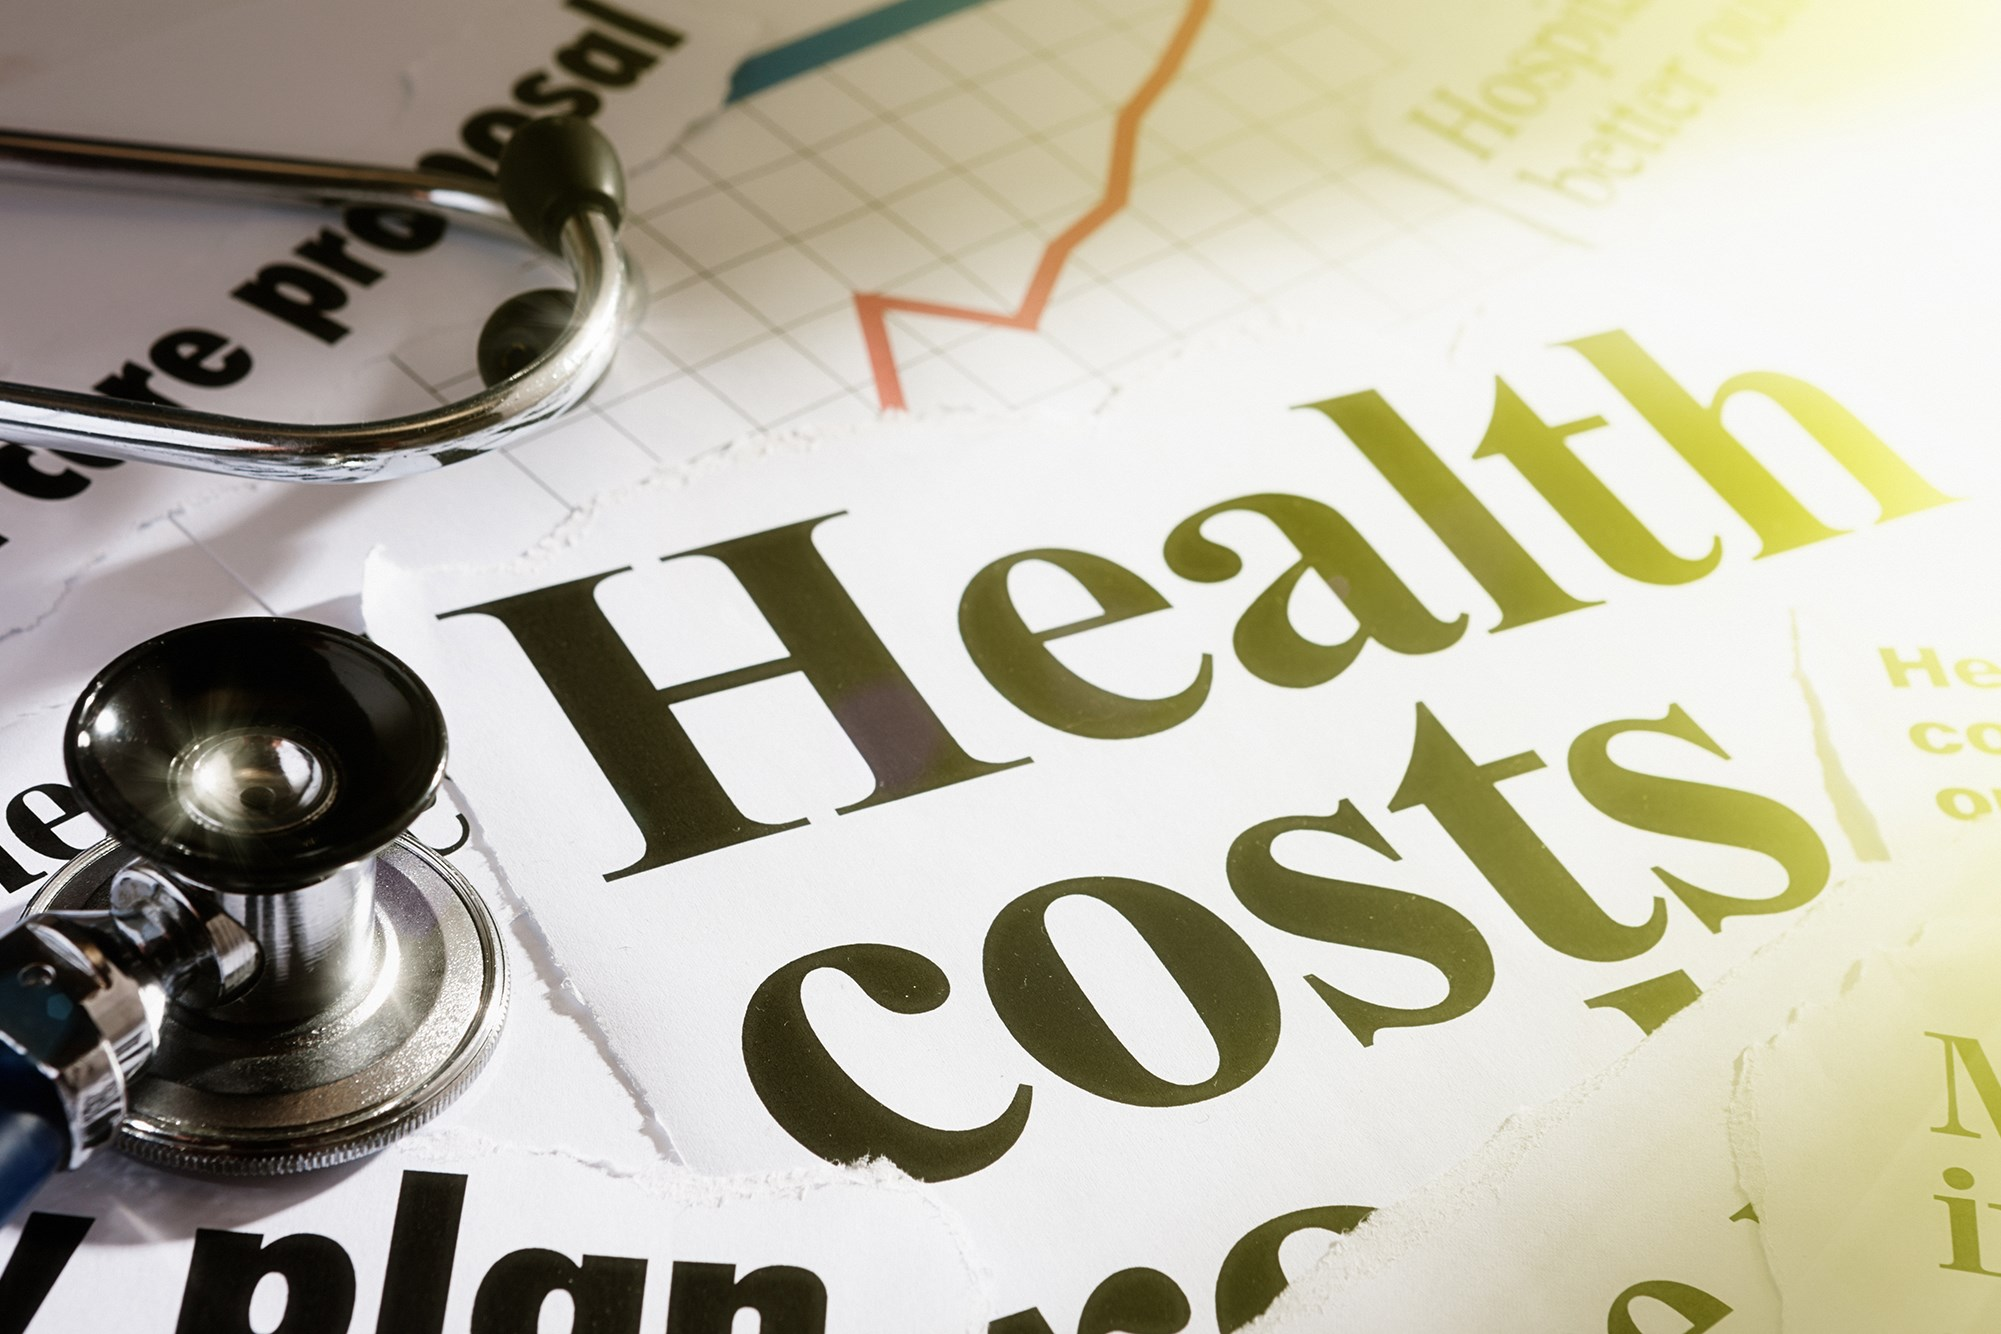 Net cancer-related healthcare costs were found to be higher for younger patients than for older patients in all 1-year and 5-year comparisons by type of cancer and stage of disease.